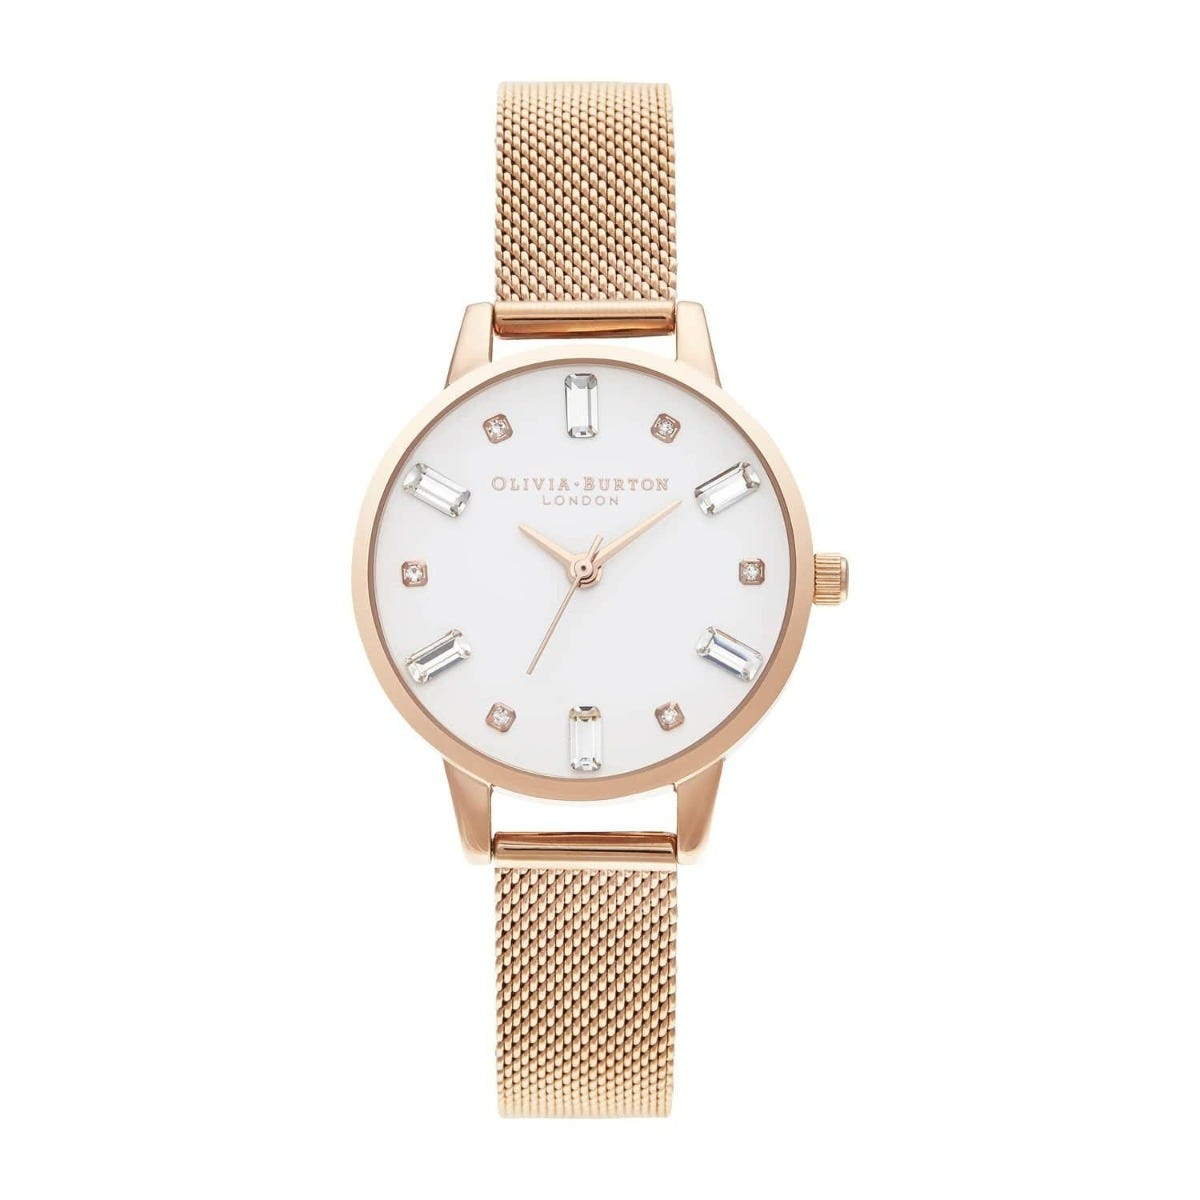 Olivia Burton Bejewelled Rose Gold-Toned Mesh Bracelet Watch